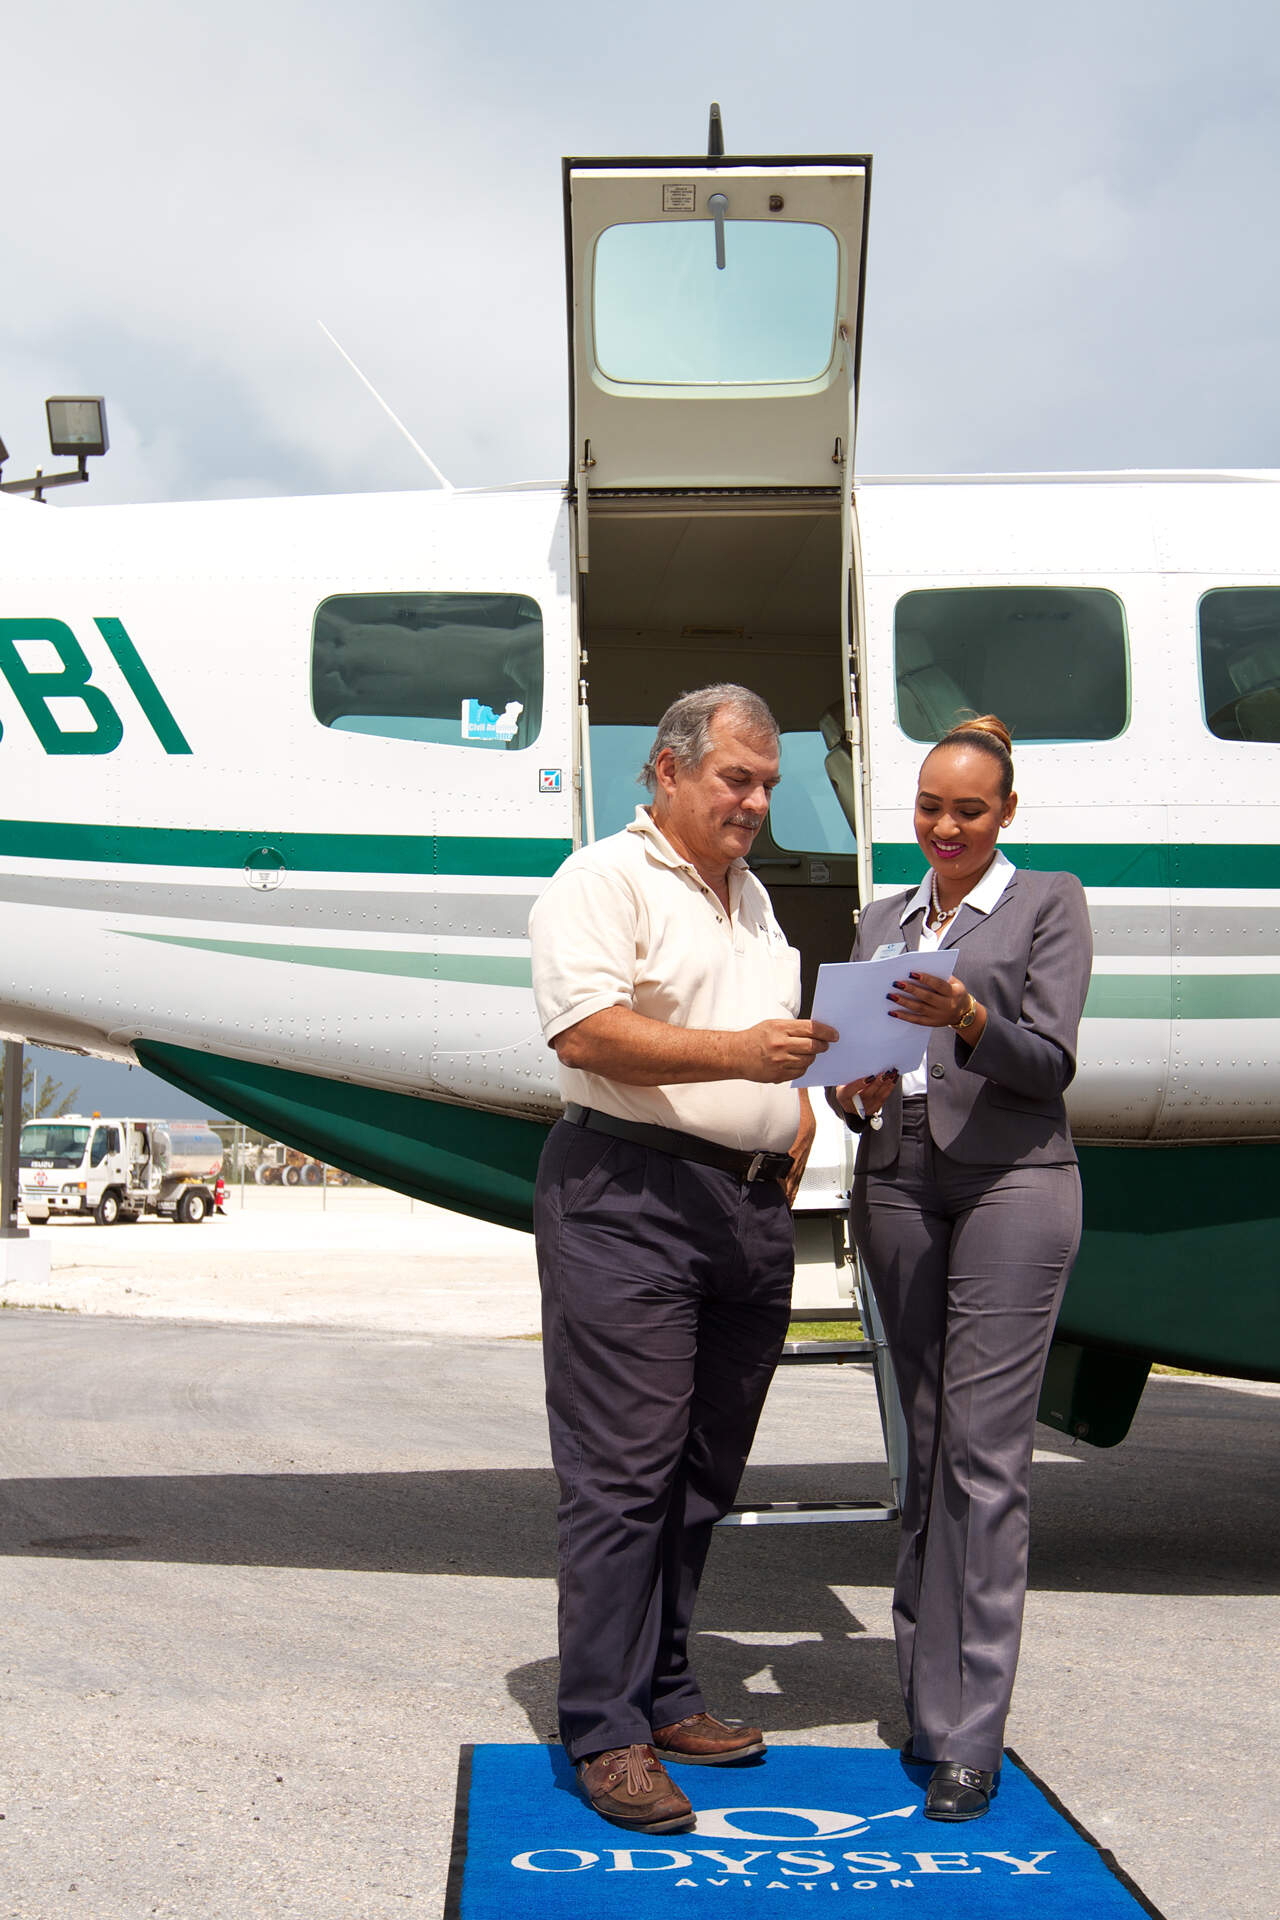 Paragon add two Odyssey Aviation locations in The Bahamas